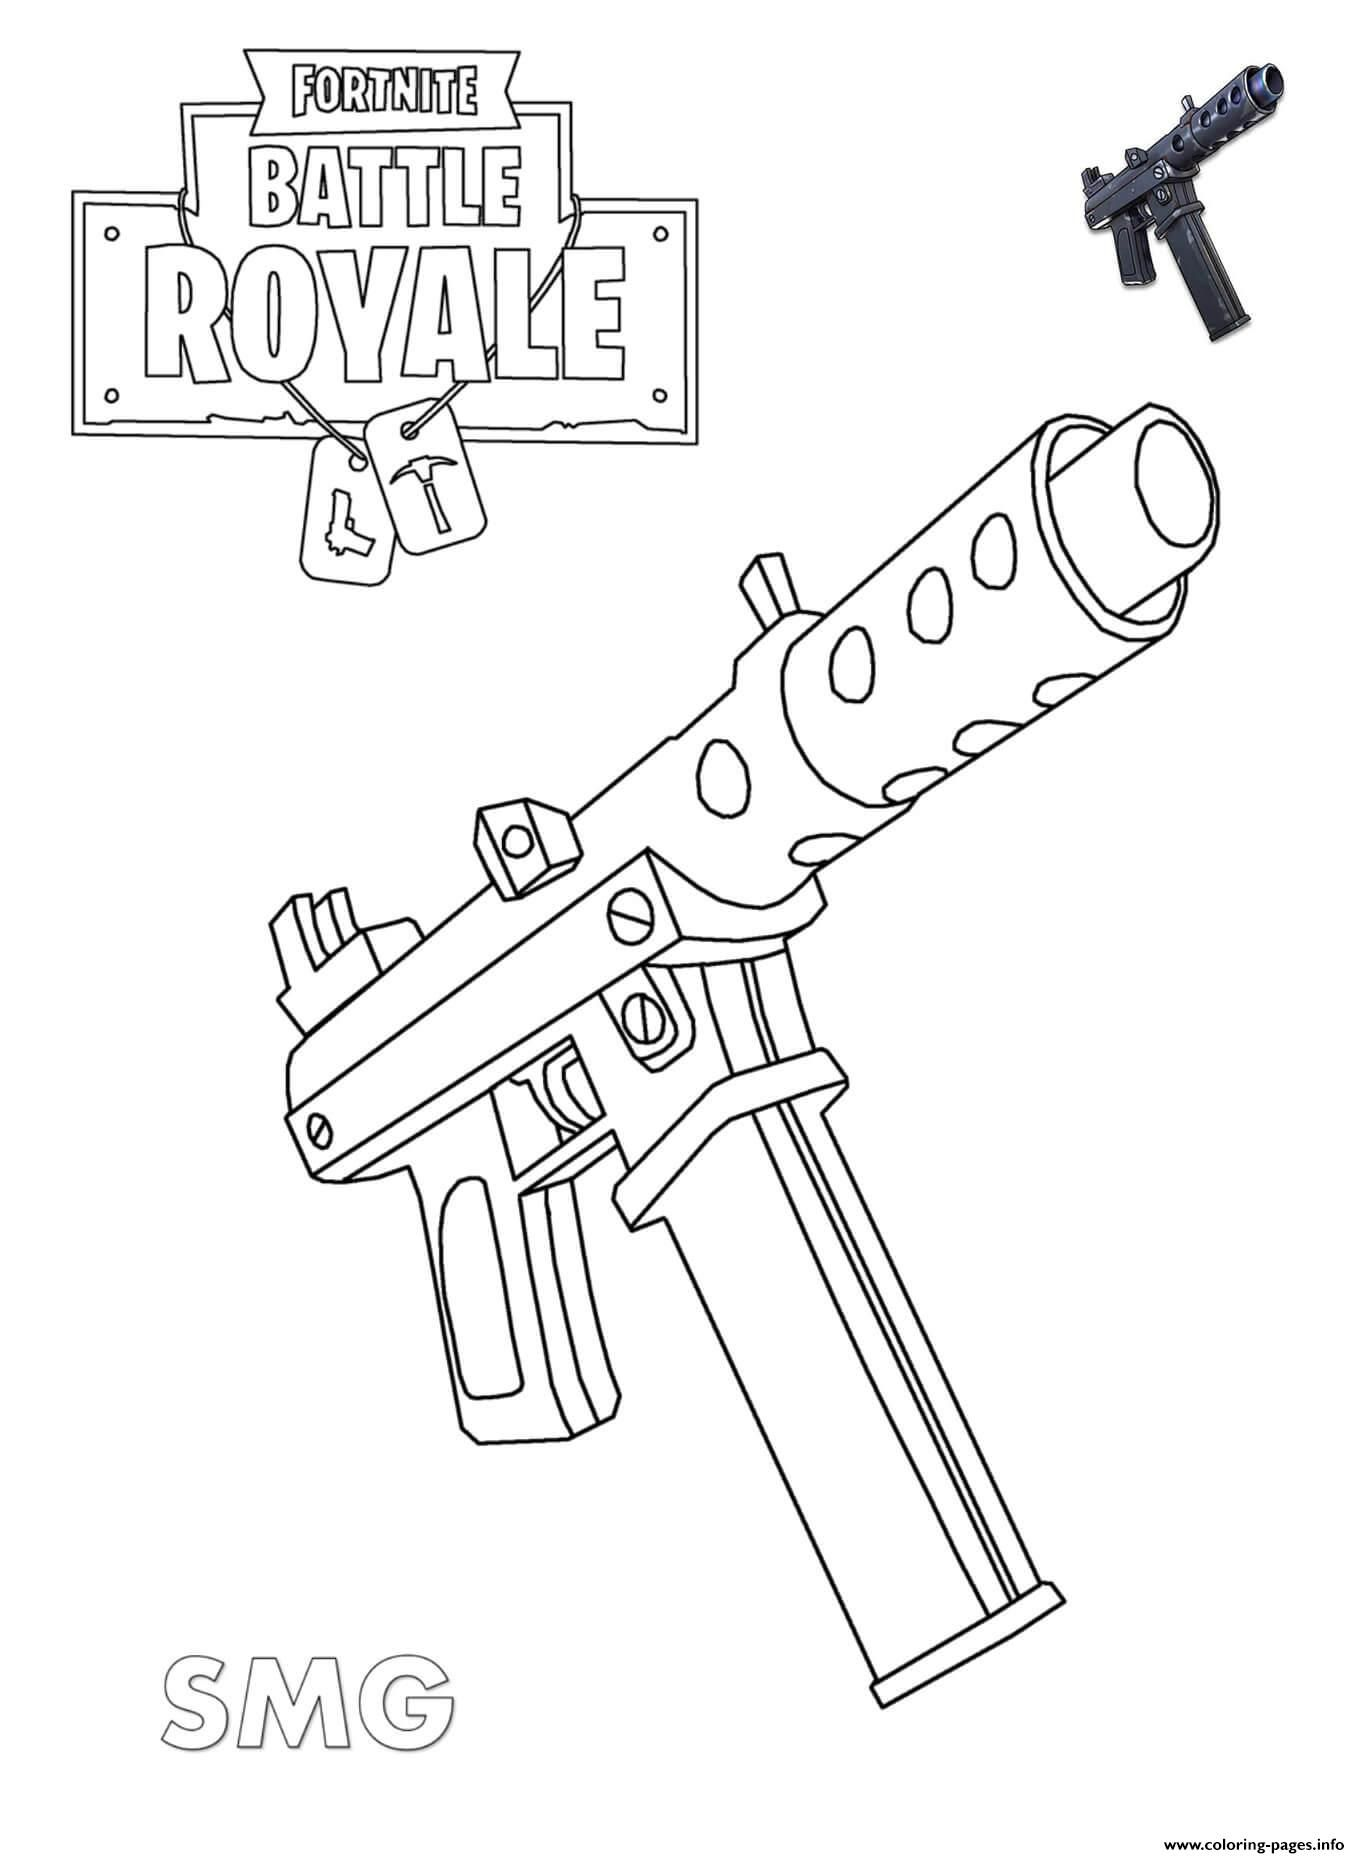 Print Machine Pistol Fortnite coloring